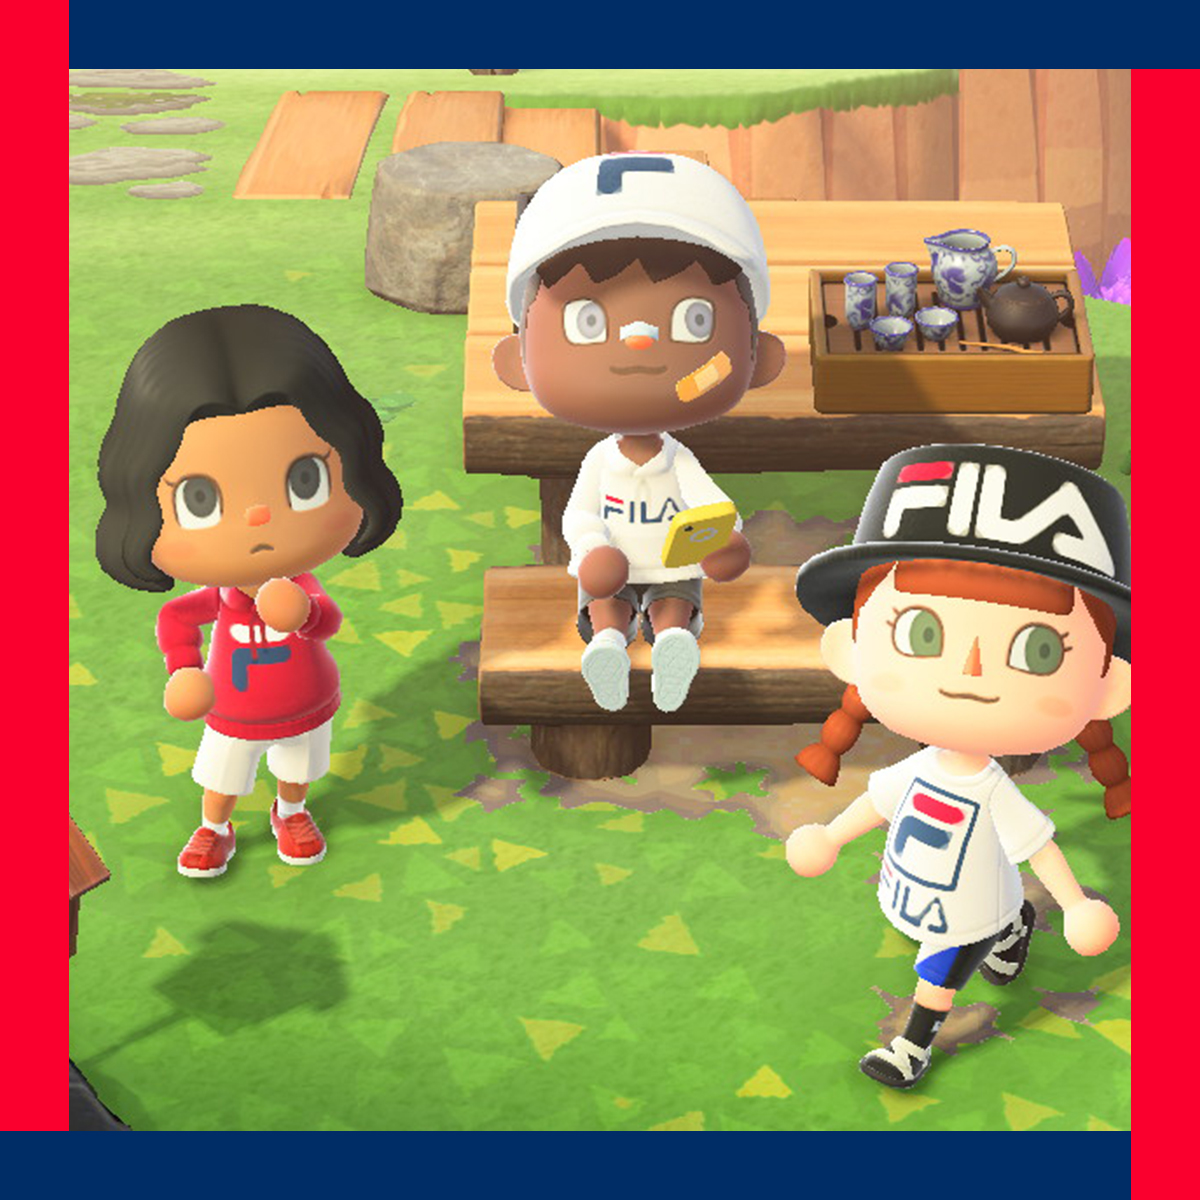 FILA x Animal Crossing New Horizons